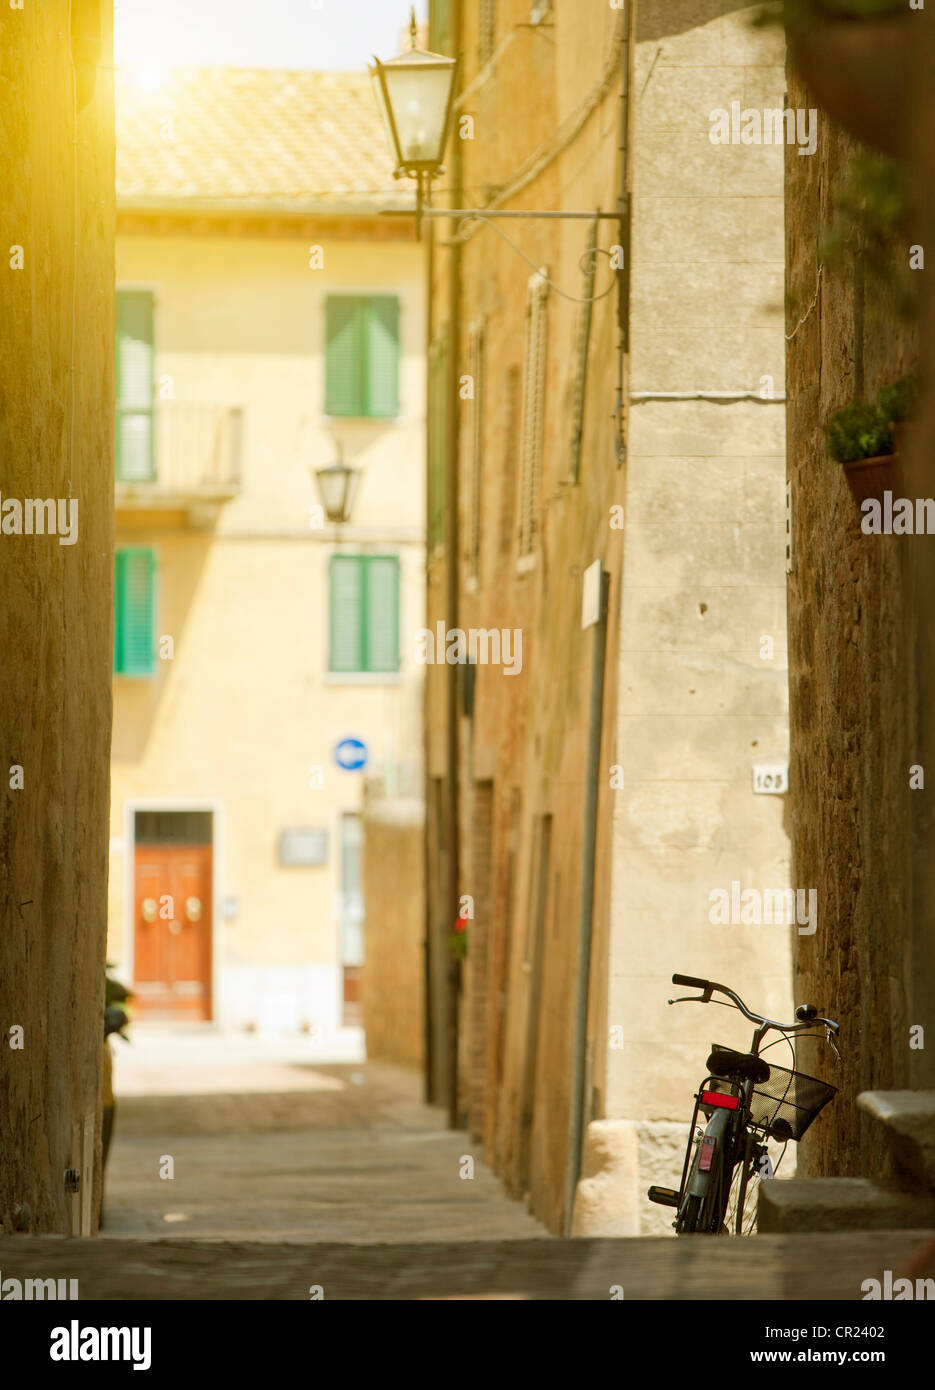 Bicycle parked in village alleyway - Stock Image